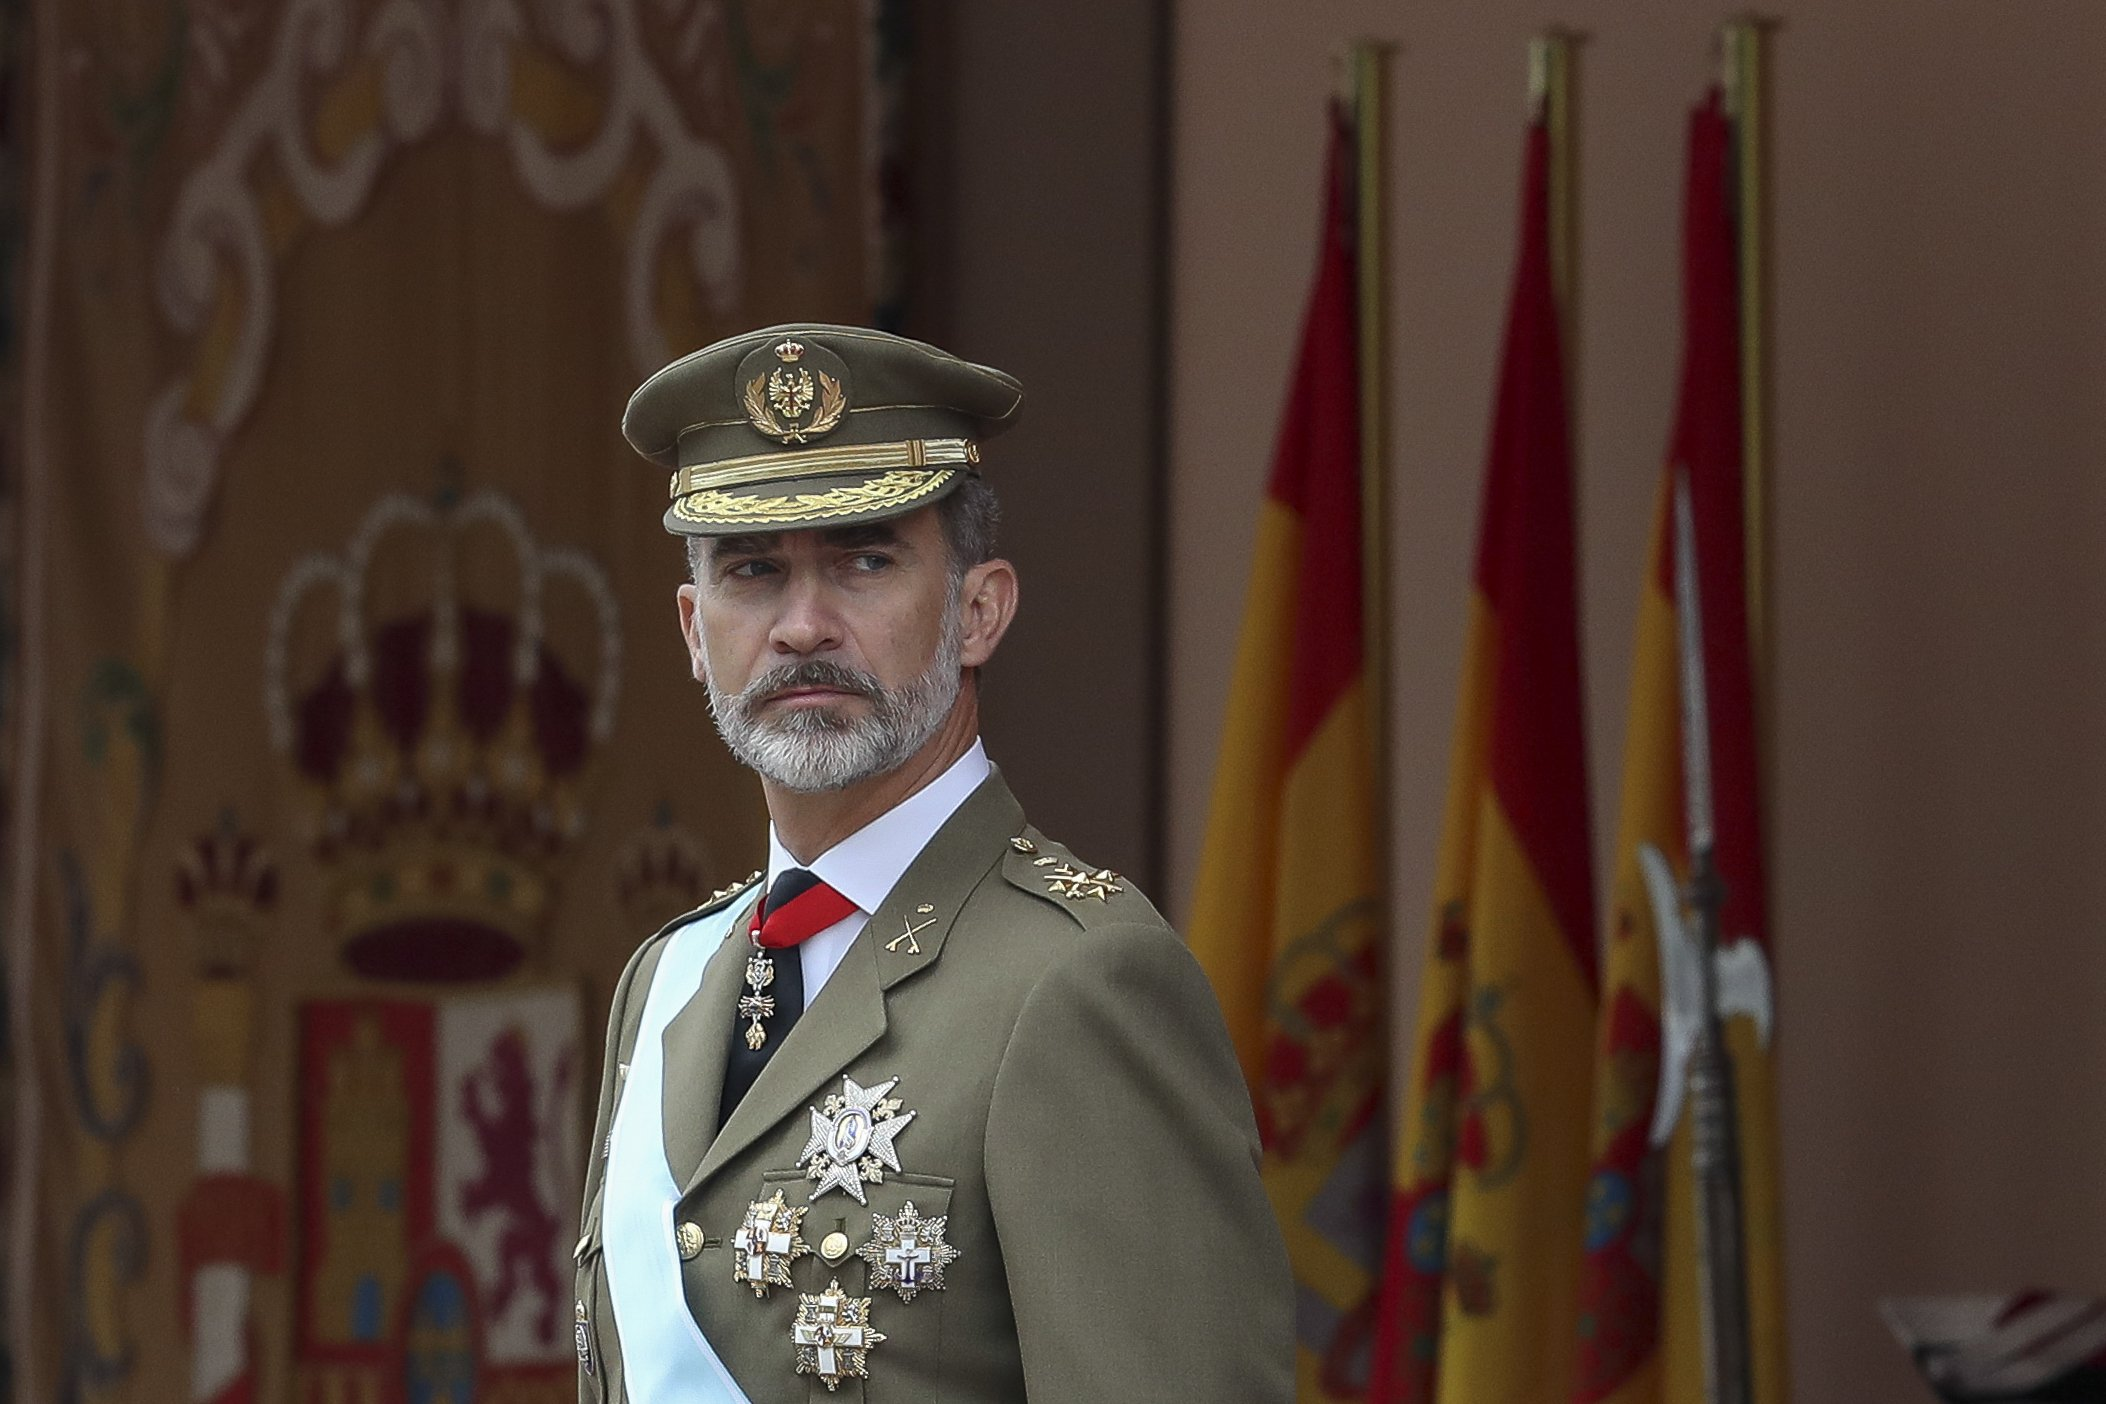 Catalan activists to protest king Felipe VI at opening of Mobile World Congress